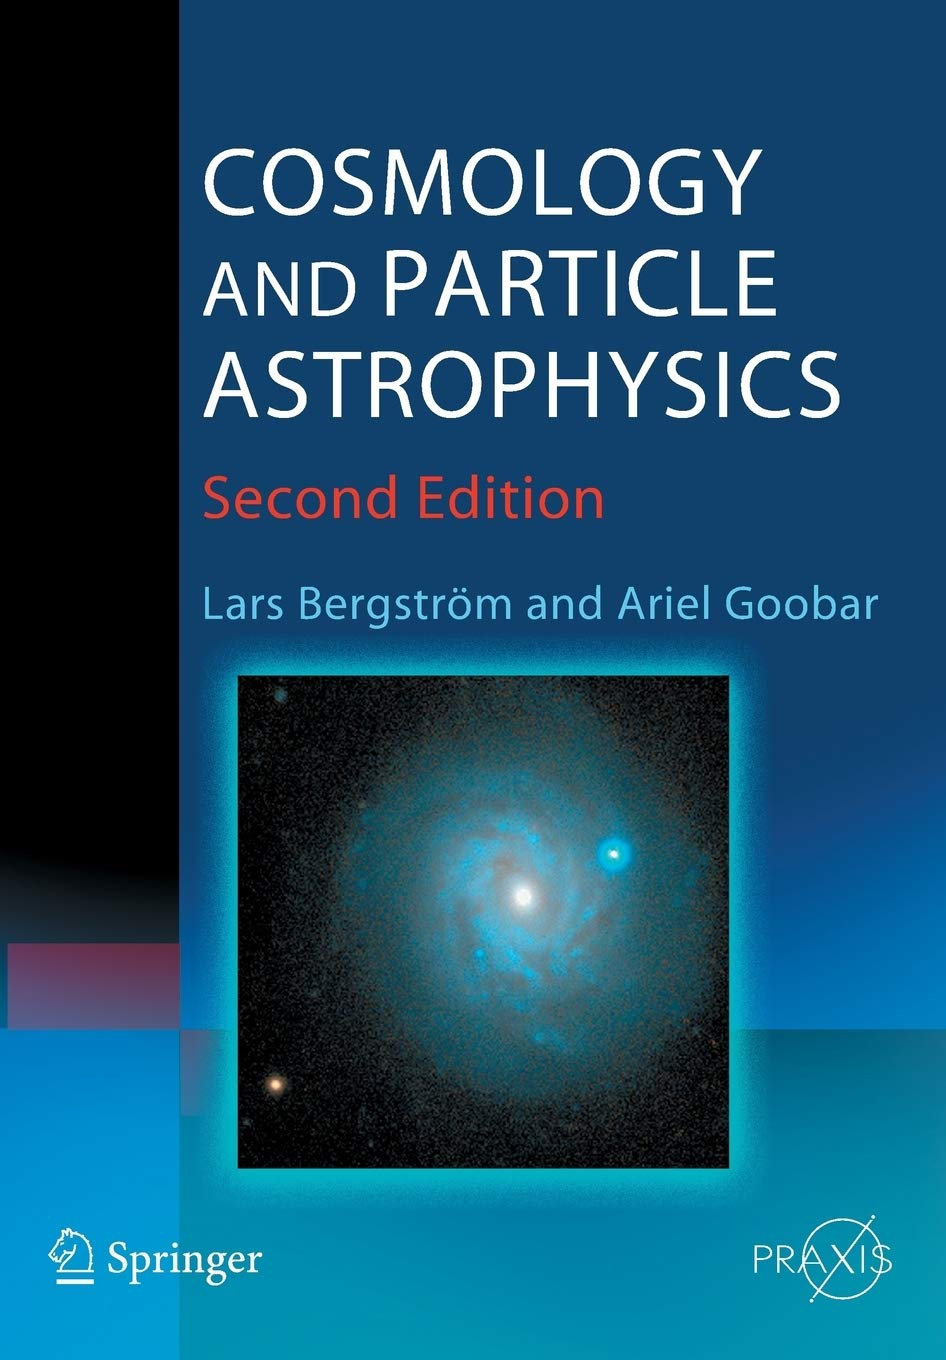 Download Cosmology And Particle Astrophysics Lingua Inglese 